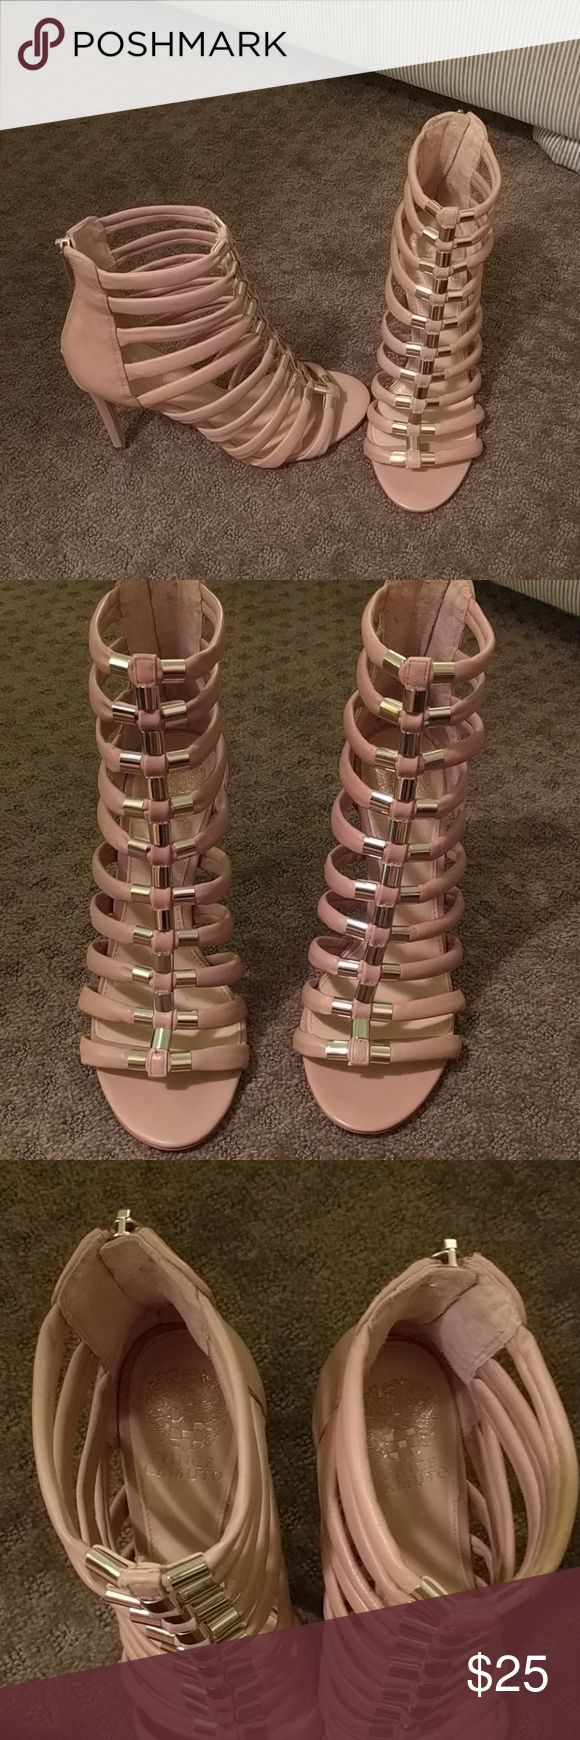 "Vince Camuto caged Sandals Heeled sandals with caged design and silver accents down the middle. These go just above the ankle. Worn once for a wedding. Dusty rose color. 3"" heel. Vince Camuto Shoes Sandals"